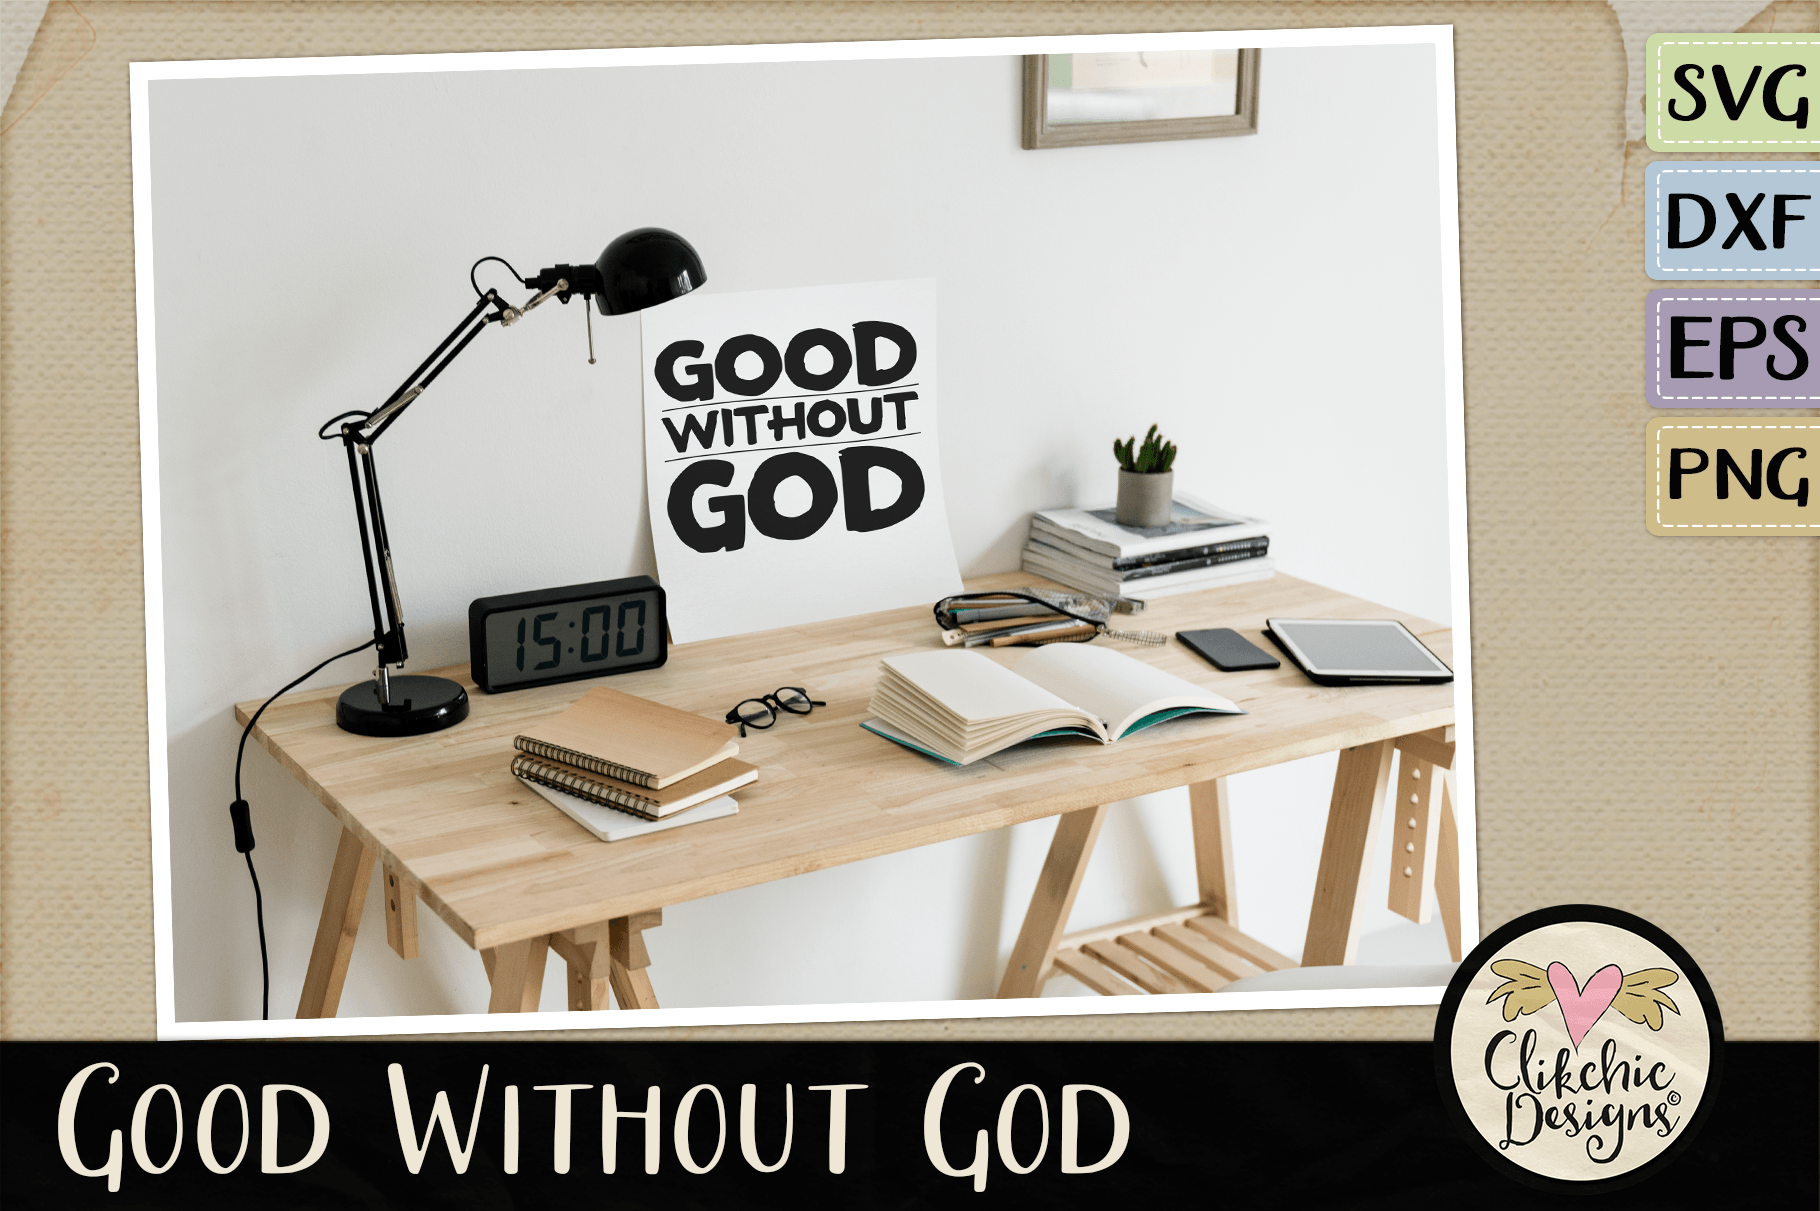 Good Without God SVG & DXF Cutting file example image 2